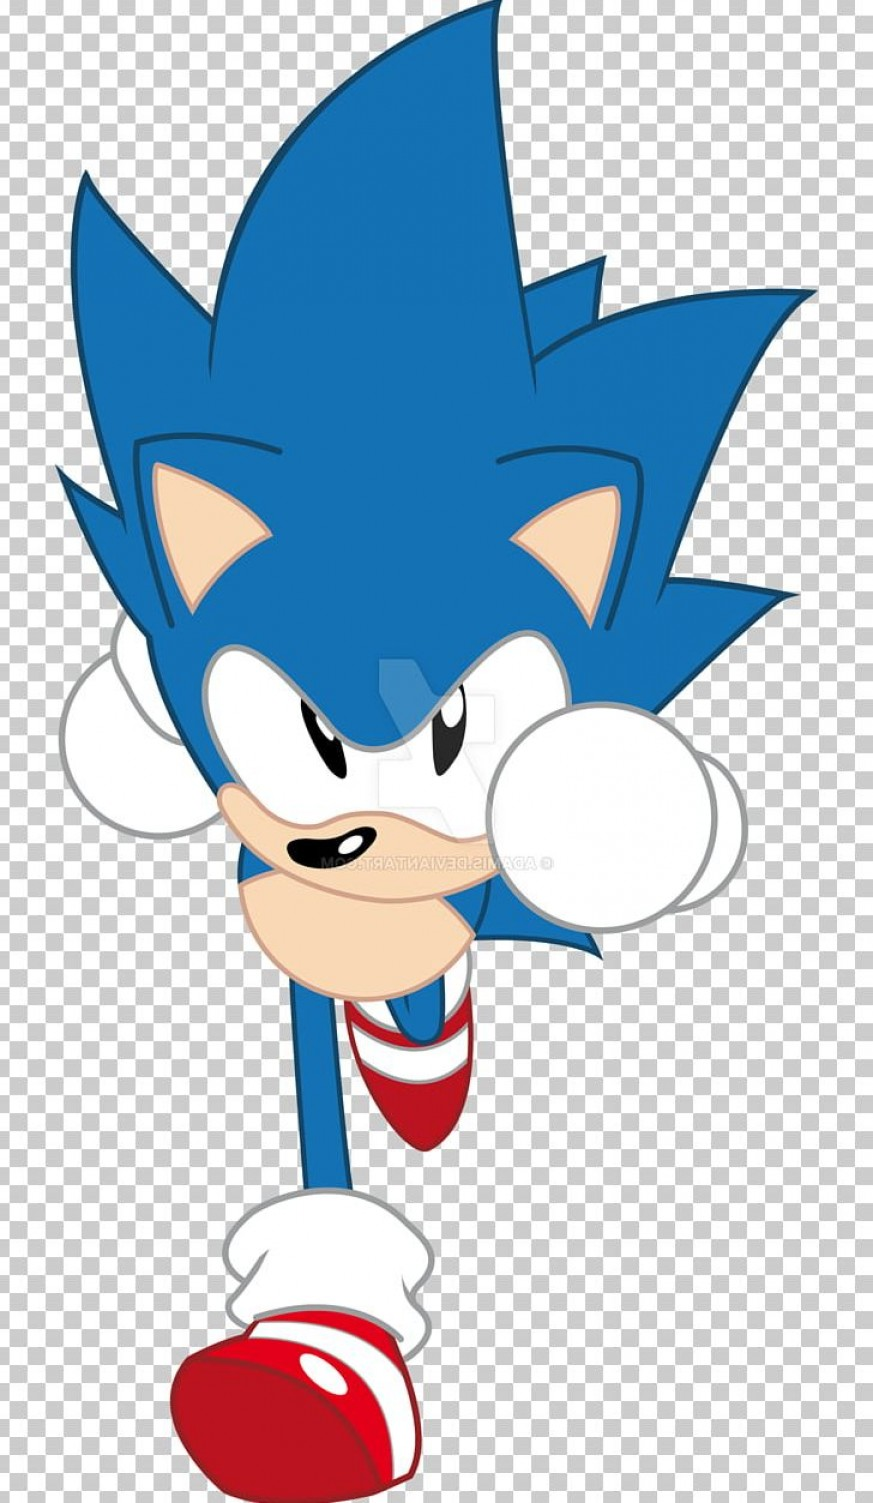 Vector From Sonic DeviantART: Sonic Cd The Crocodile Sonic The Hedgehog Sonic Generations Tails Png